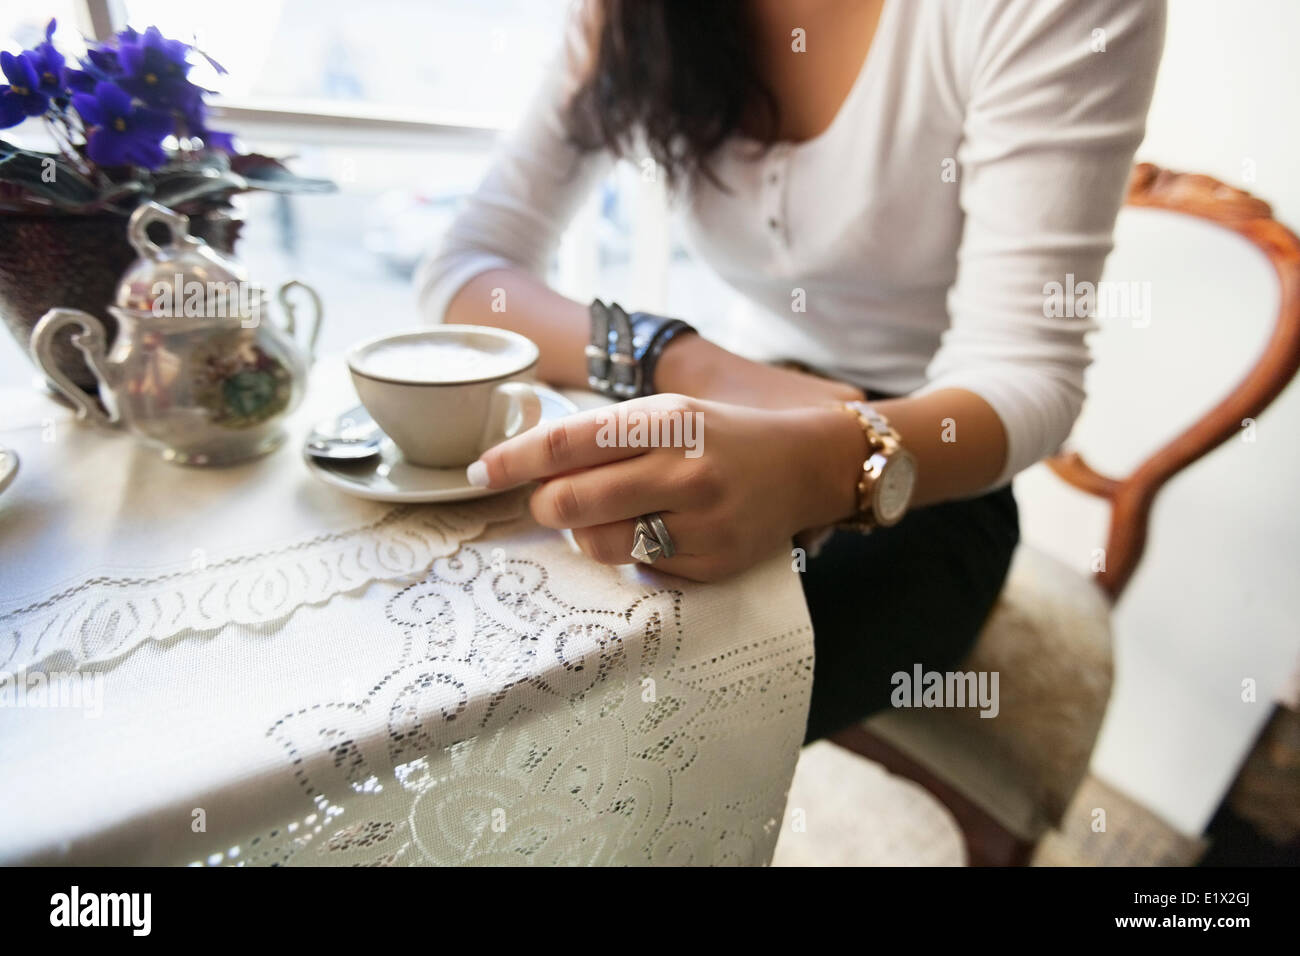 Portrait woman having coffee at cafe Photo Stock